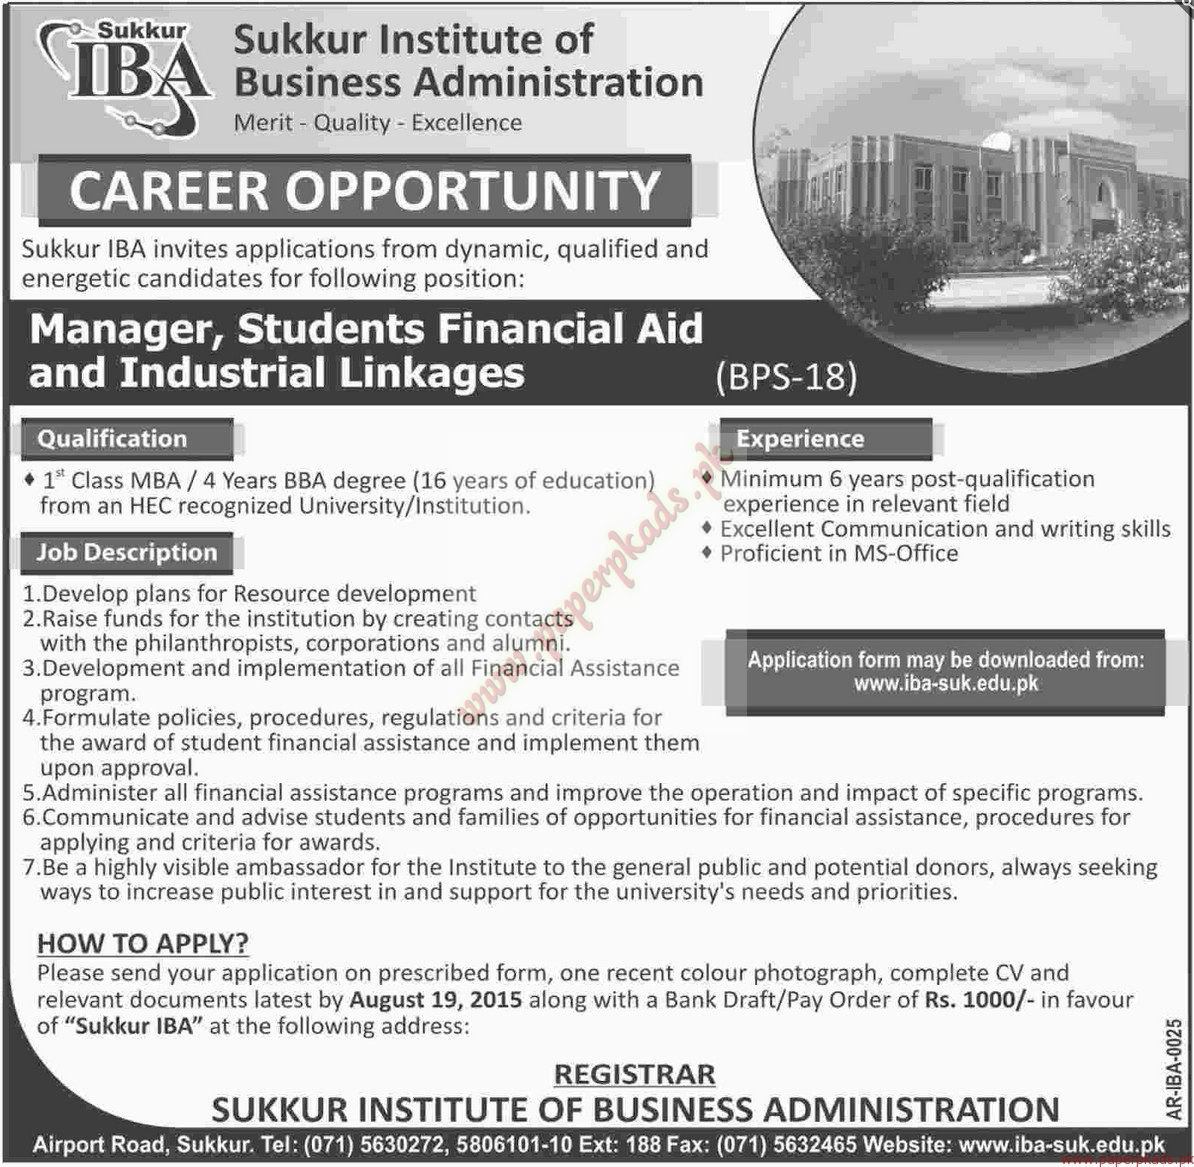 sukkur institute of business administration jobs dawn jobs ads 04 august 2015 - Job Description Of Business Administration